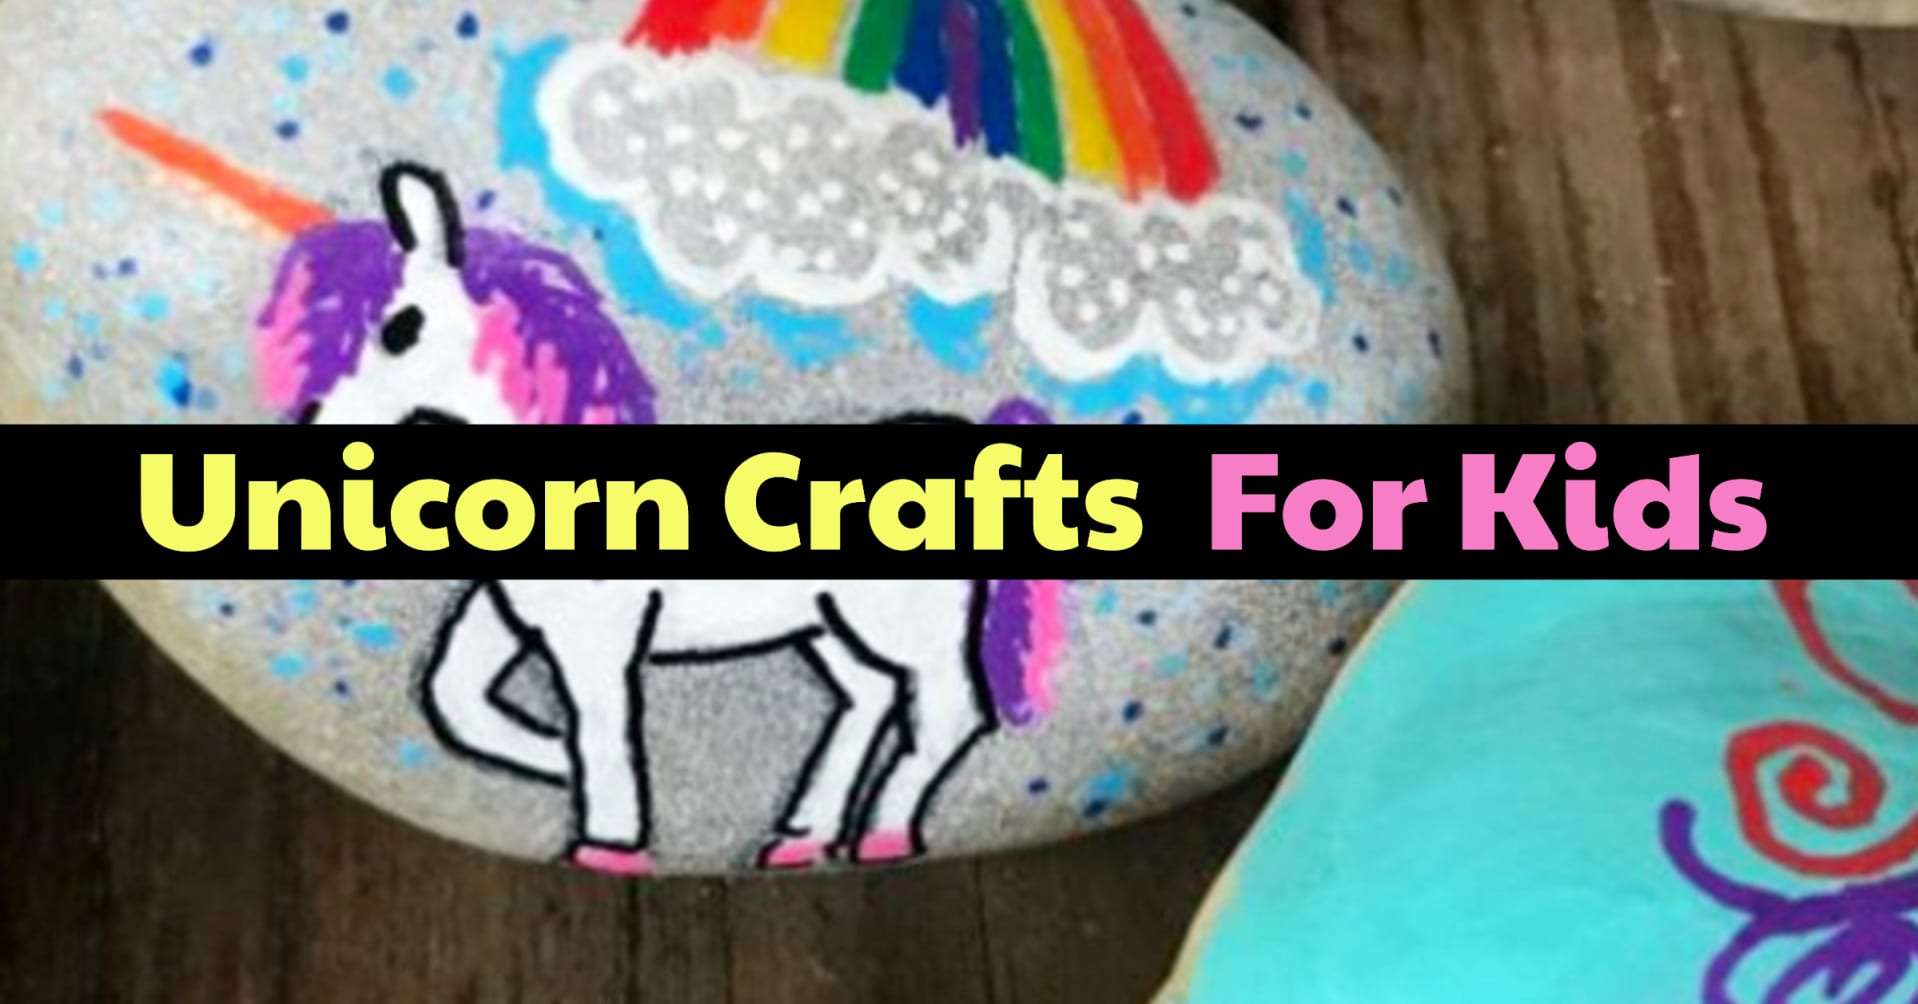 Unicorn crafts for kids to make